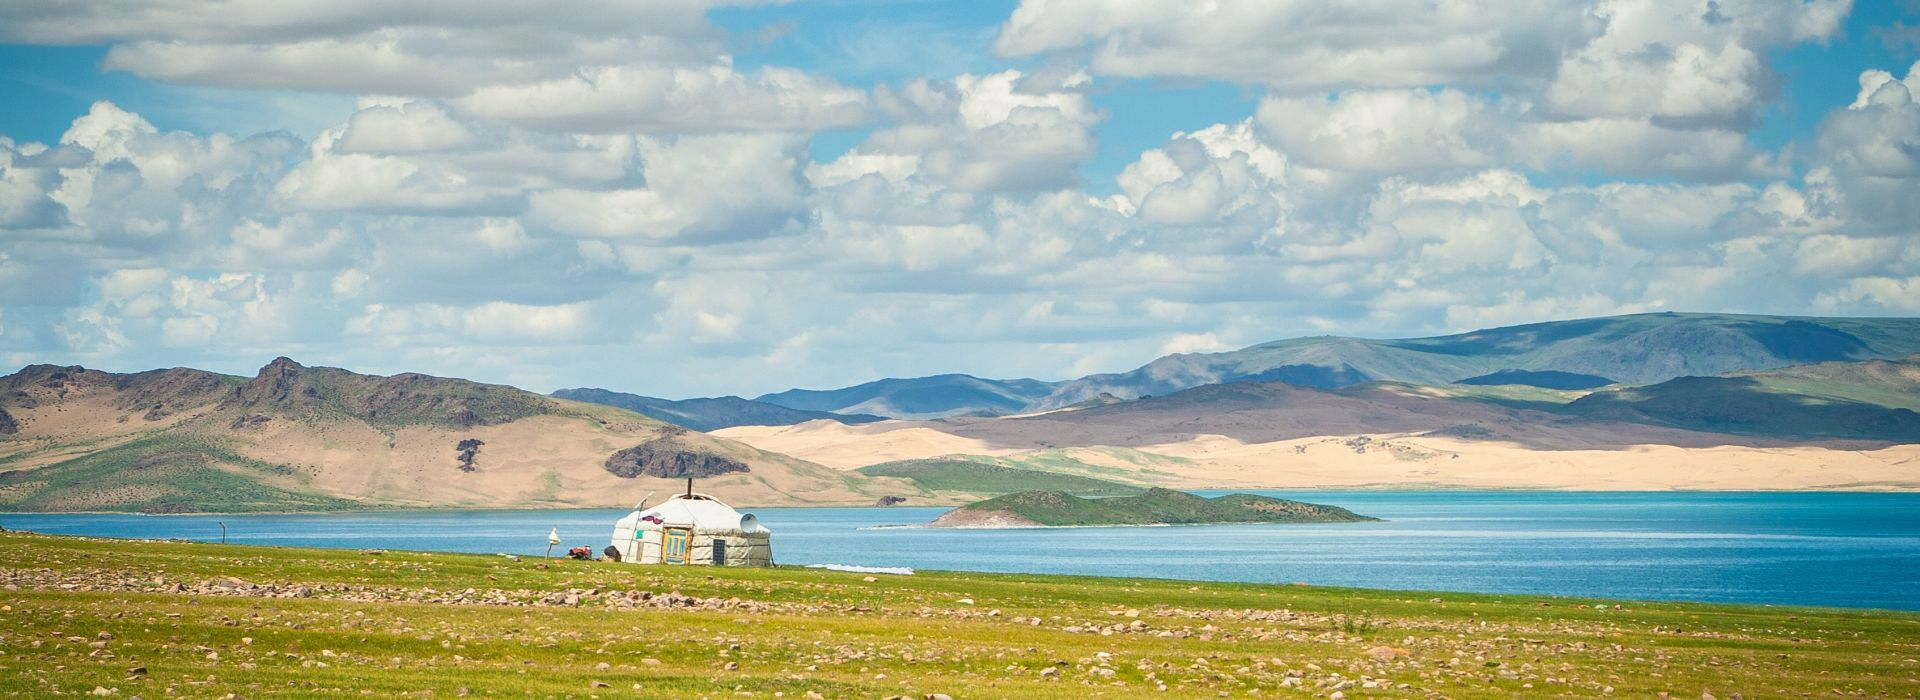 Bicycle tours in Mongolia